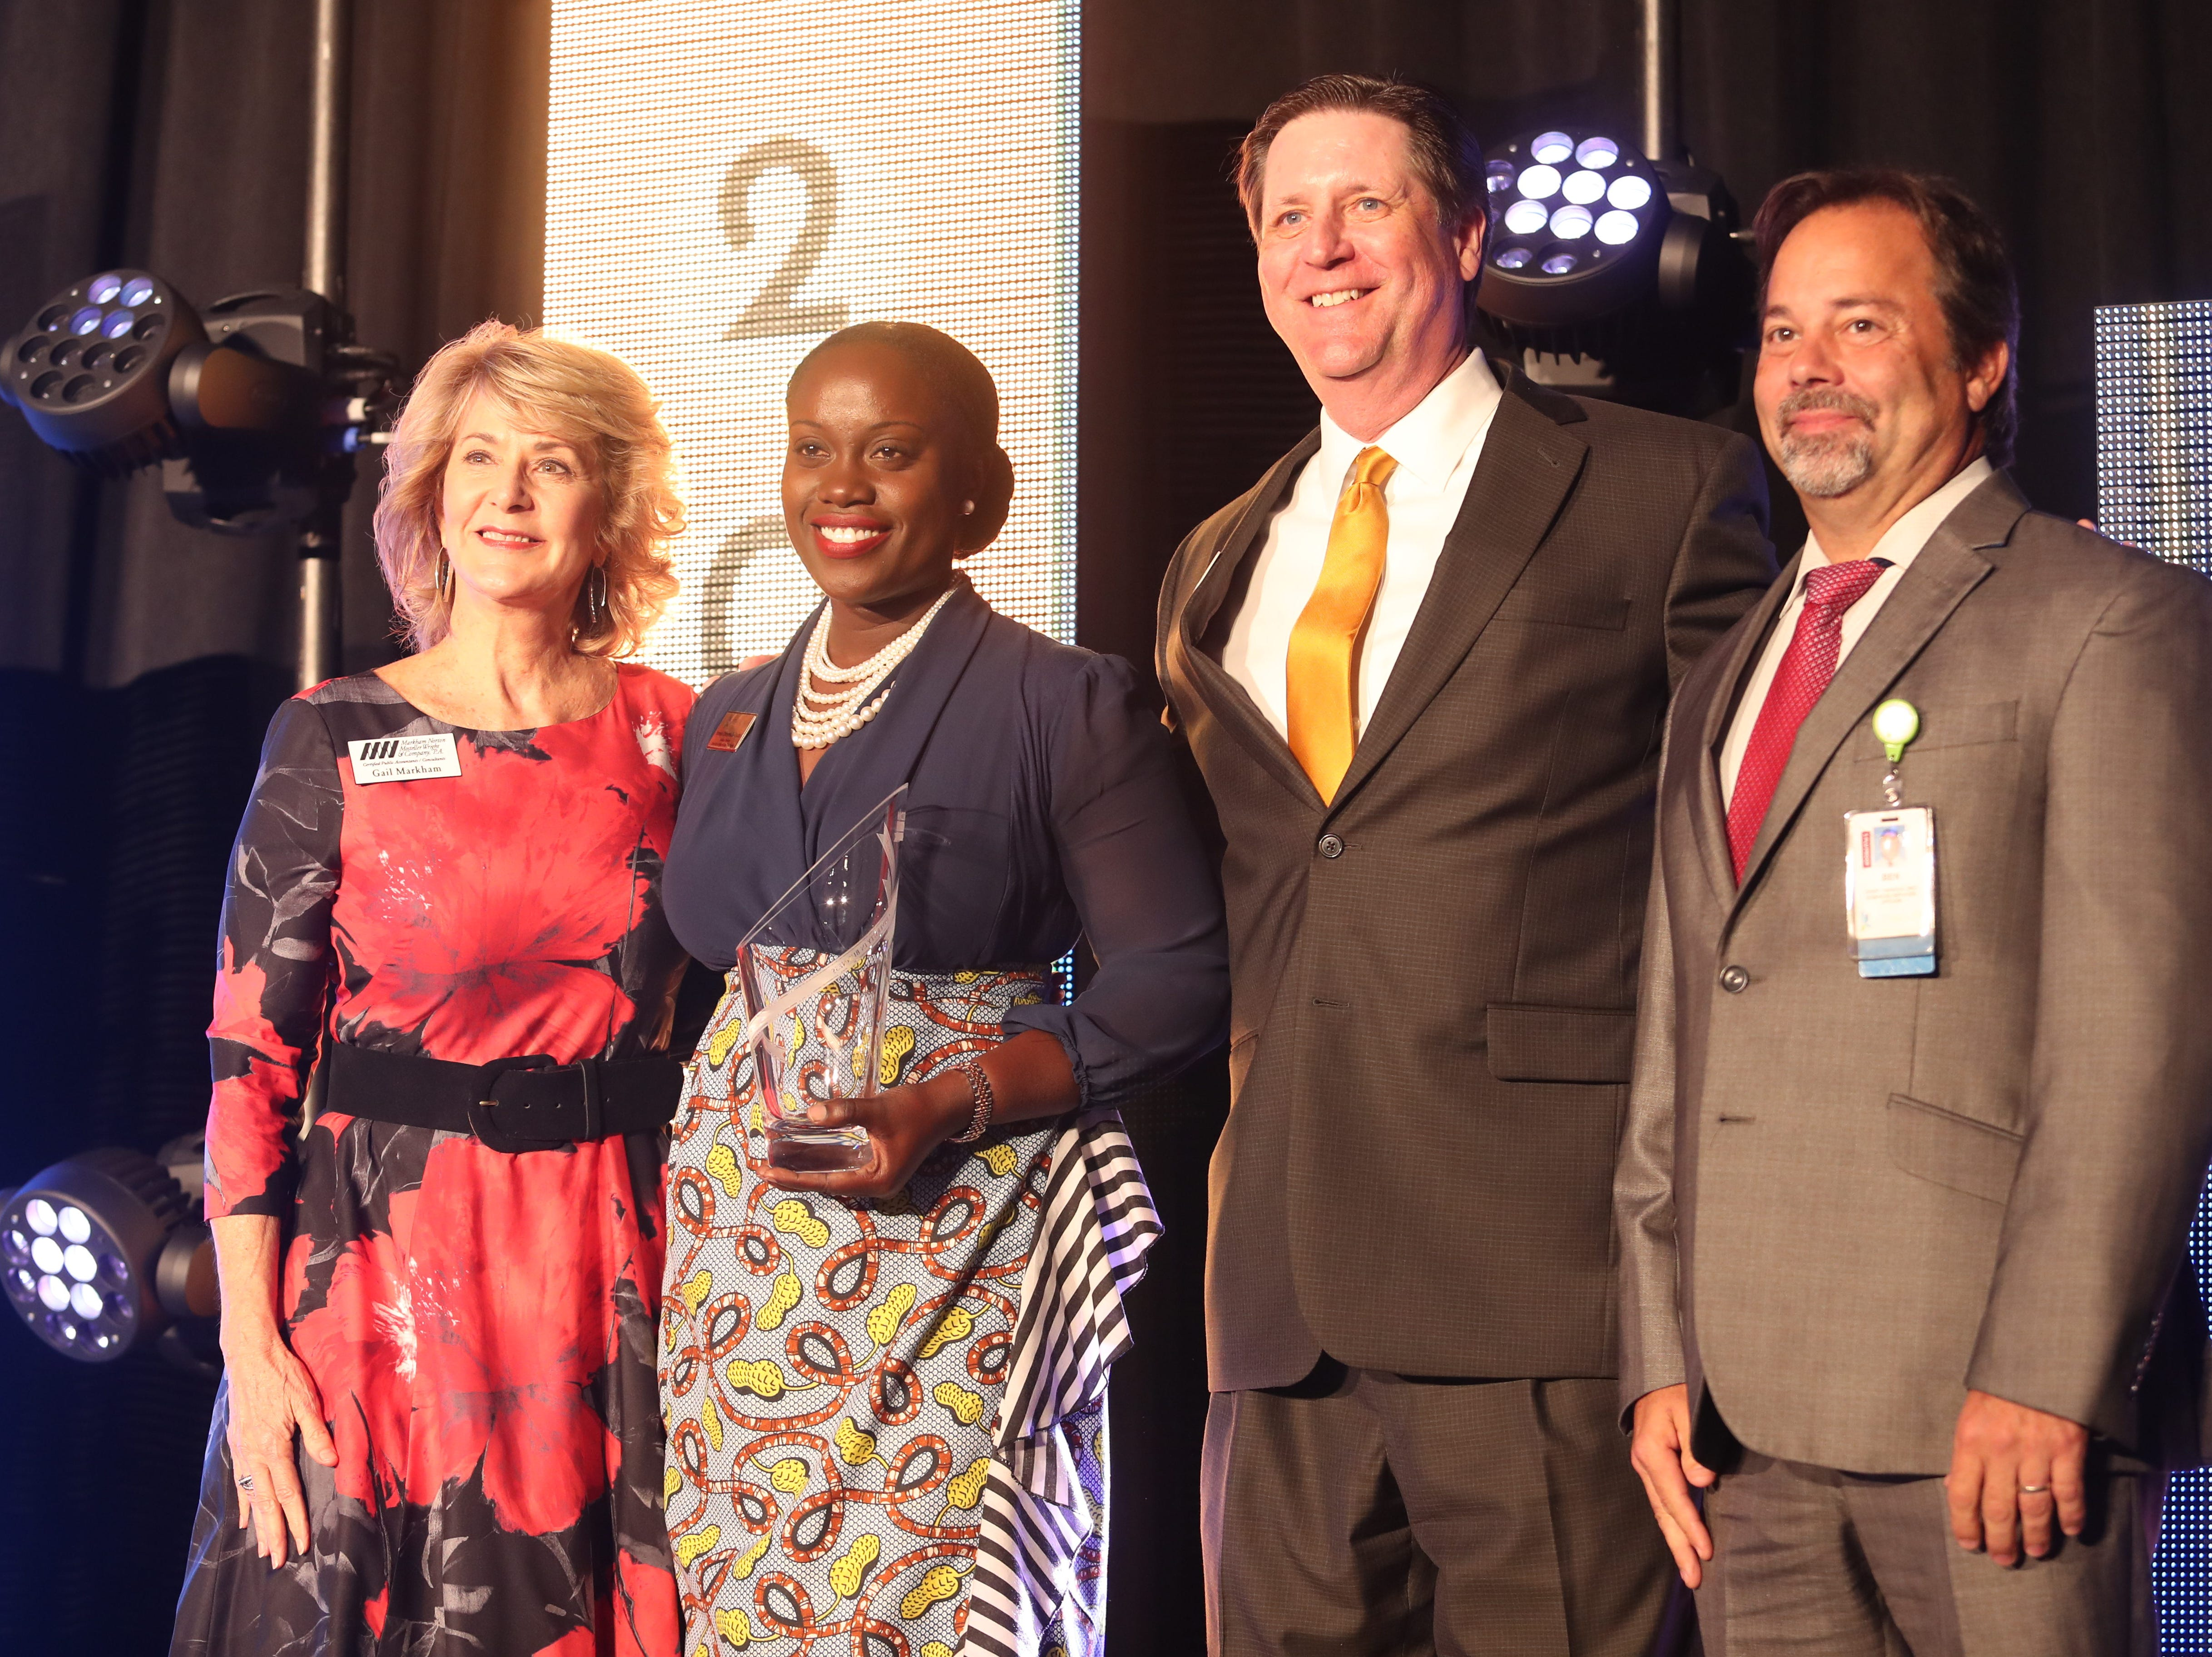 Businesses and nonprofits were recognized at the 2018 Industry Appreciation Awards Thursday at the Hyatt Regency Coconut Point Resort and Spa in Bonita Springs.